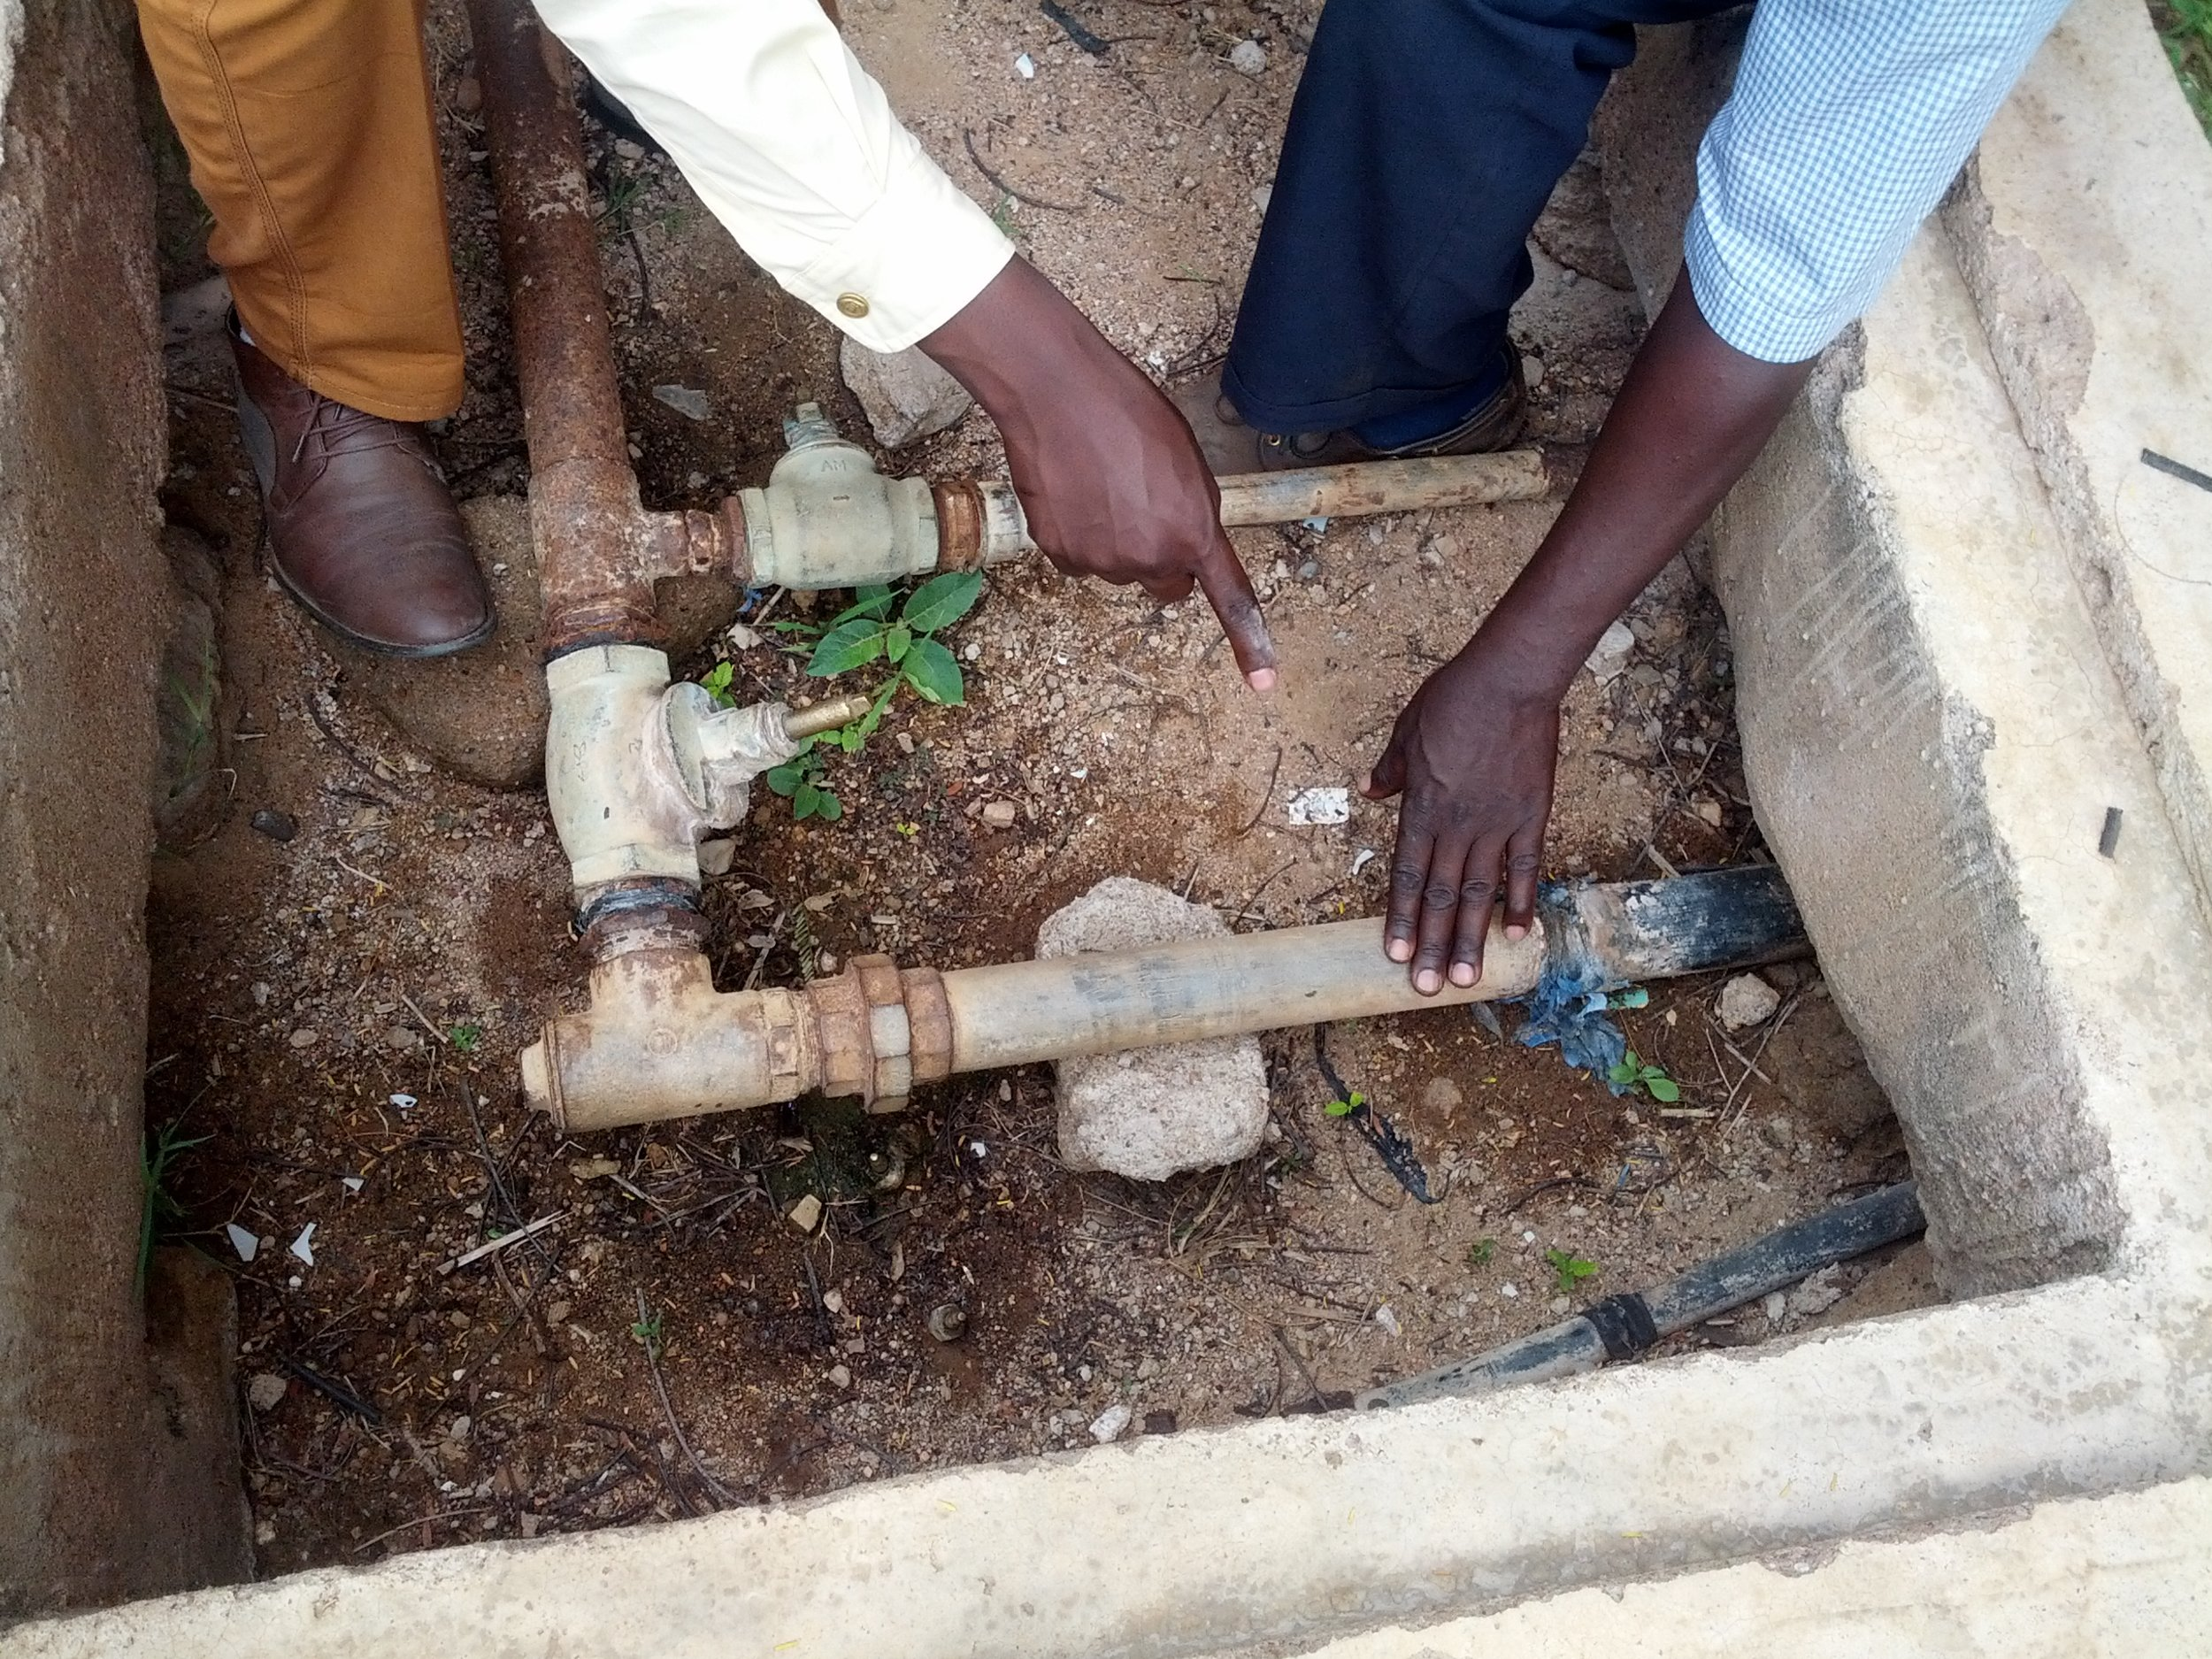 Part of the water distribution system